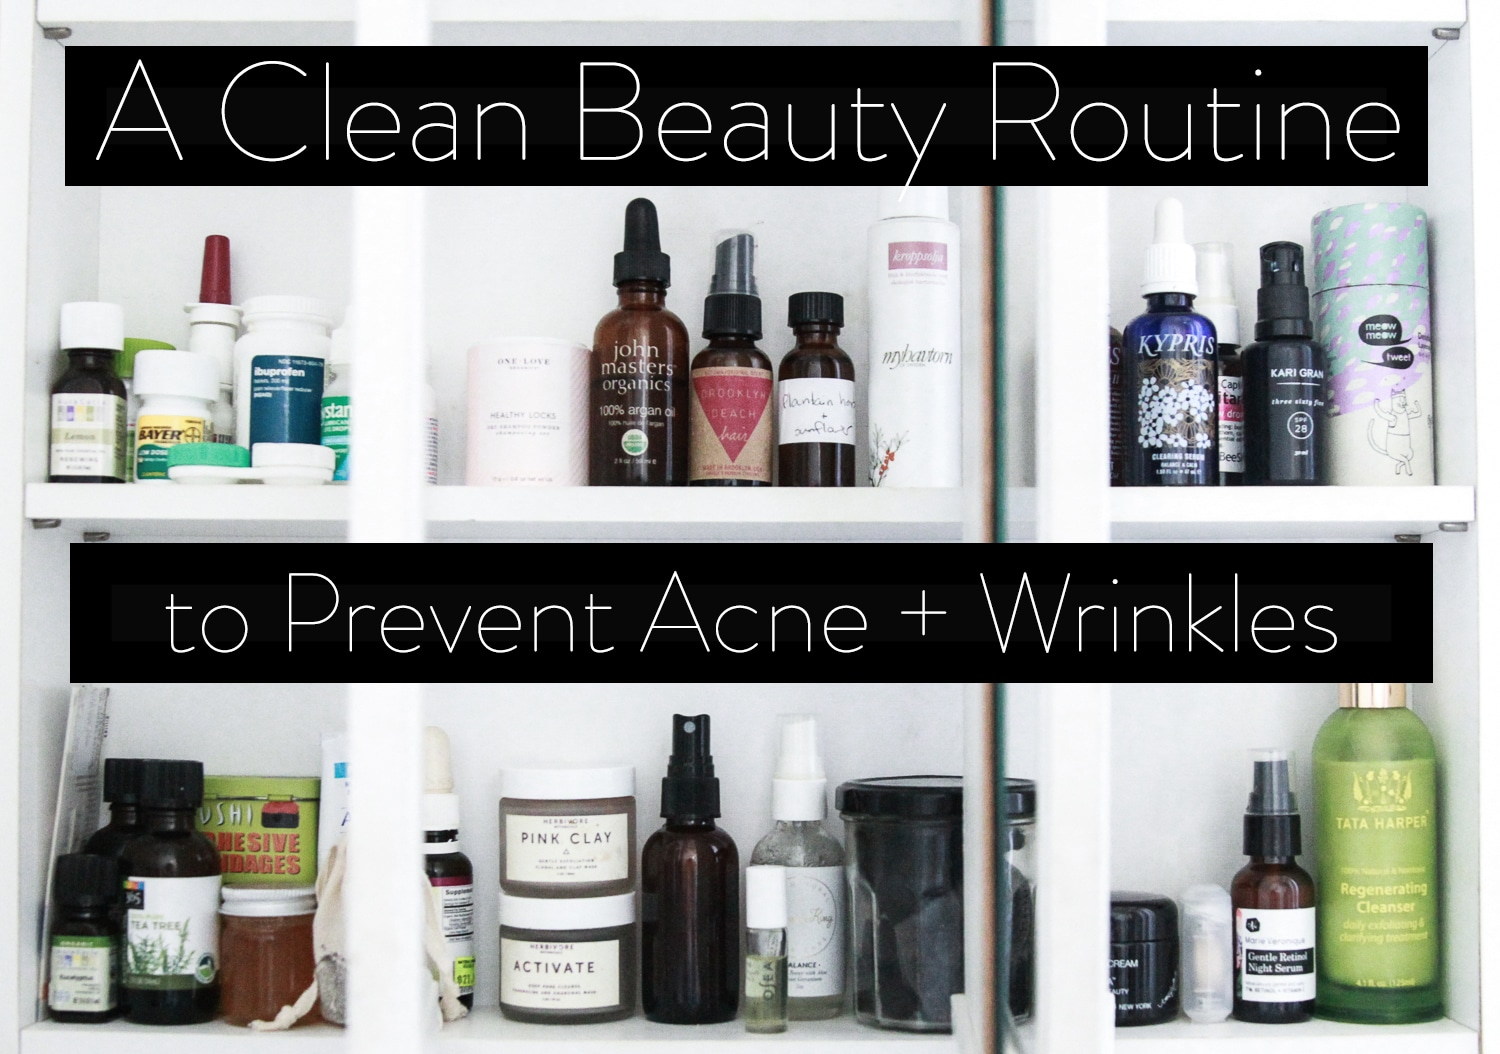 A Clean Beauty Routine to Prevent Acne and Wrinkles